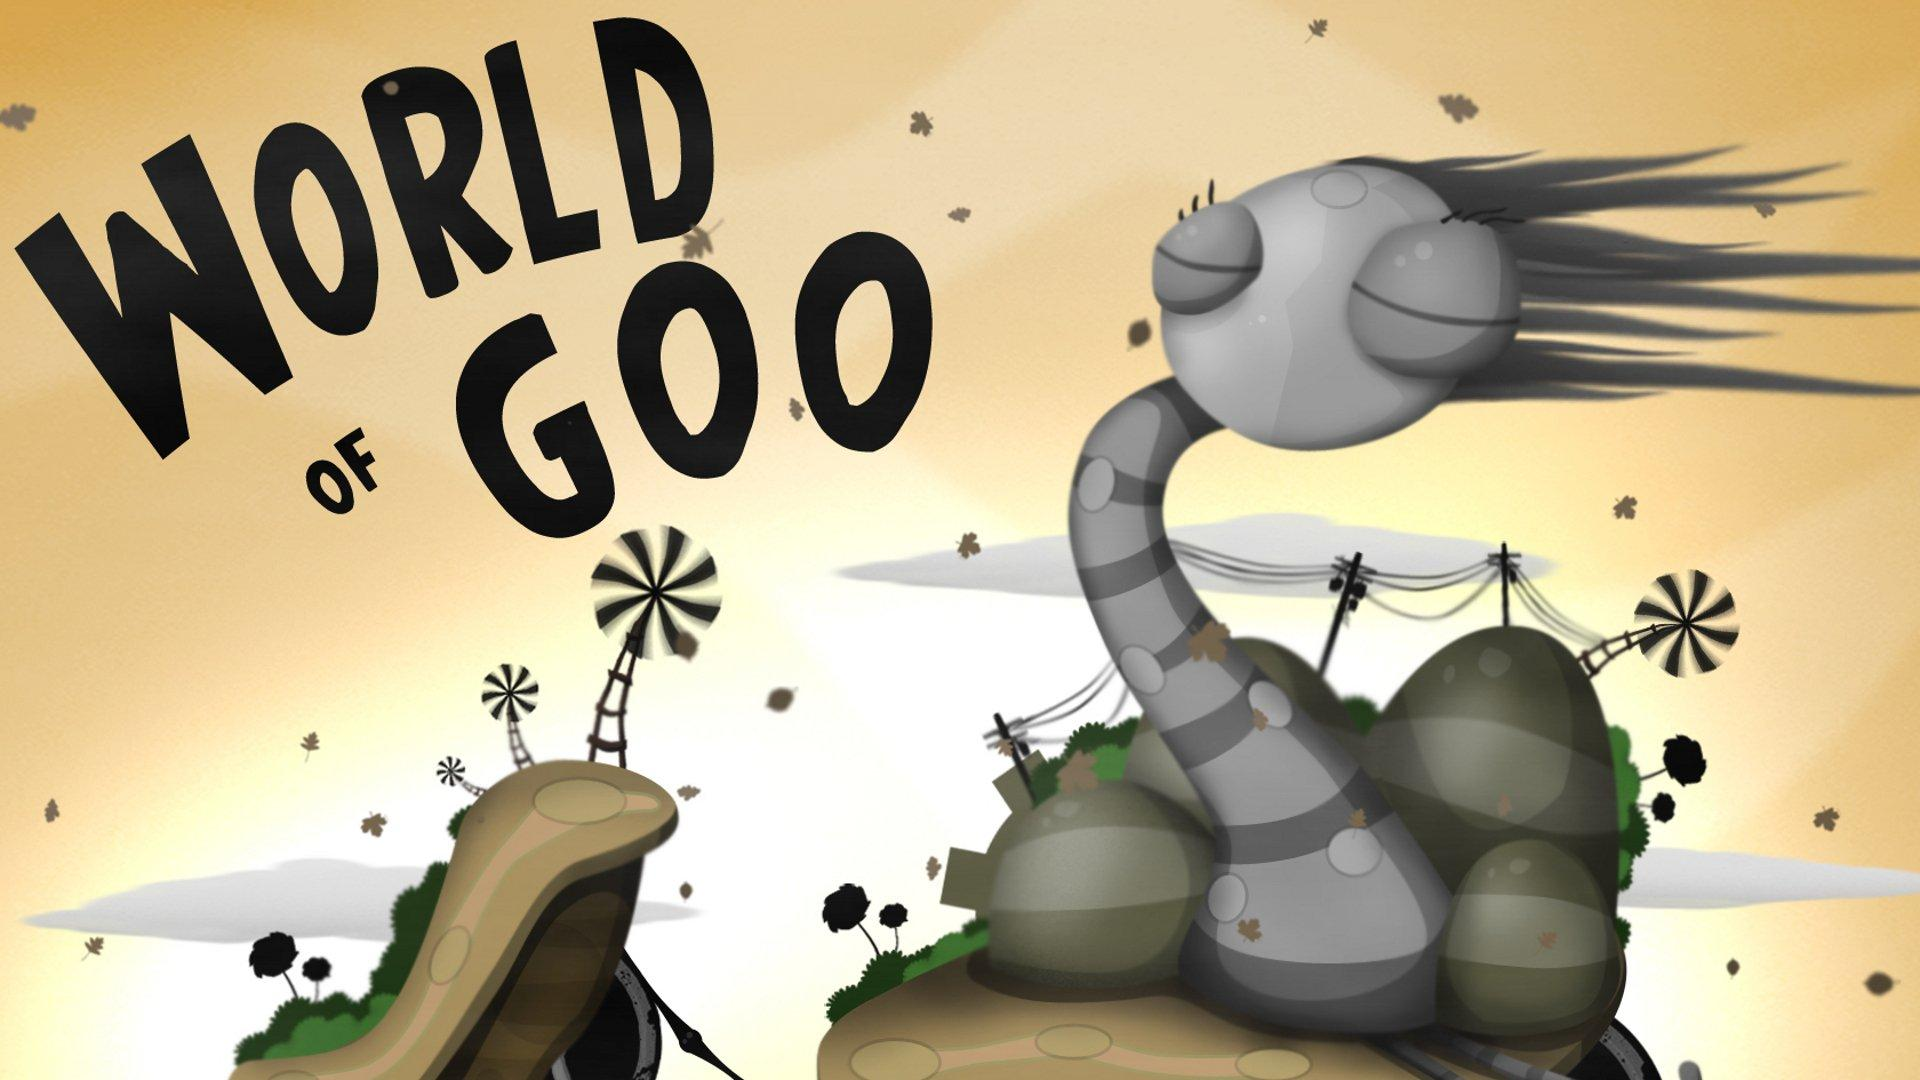 4 World of Goo HD Wallpapers